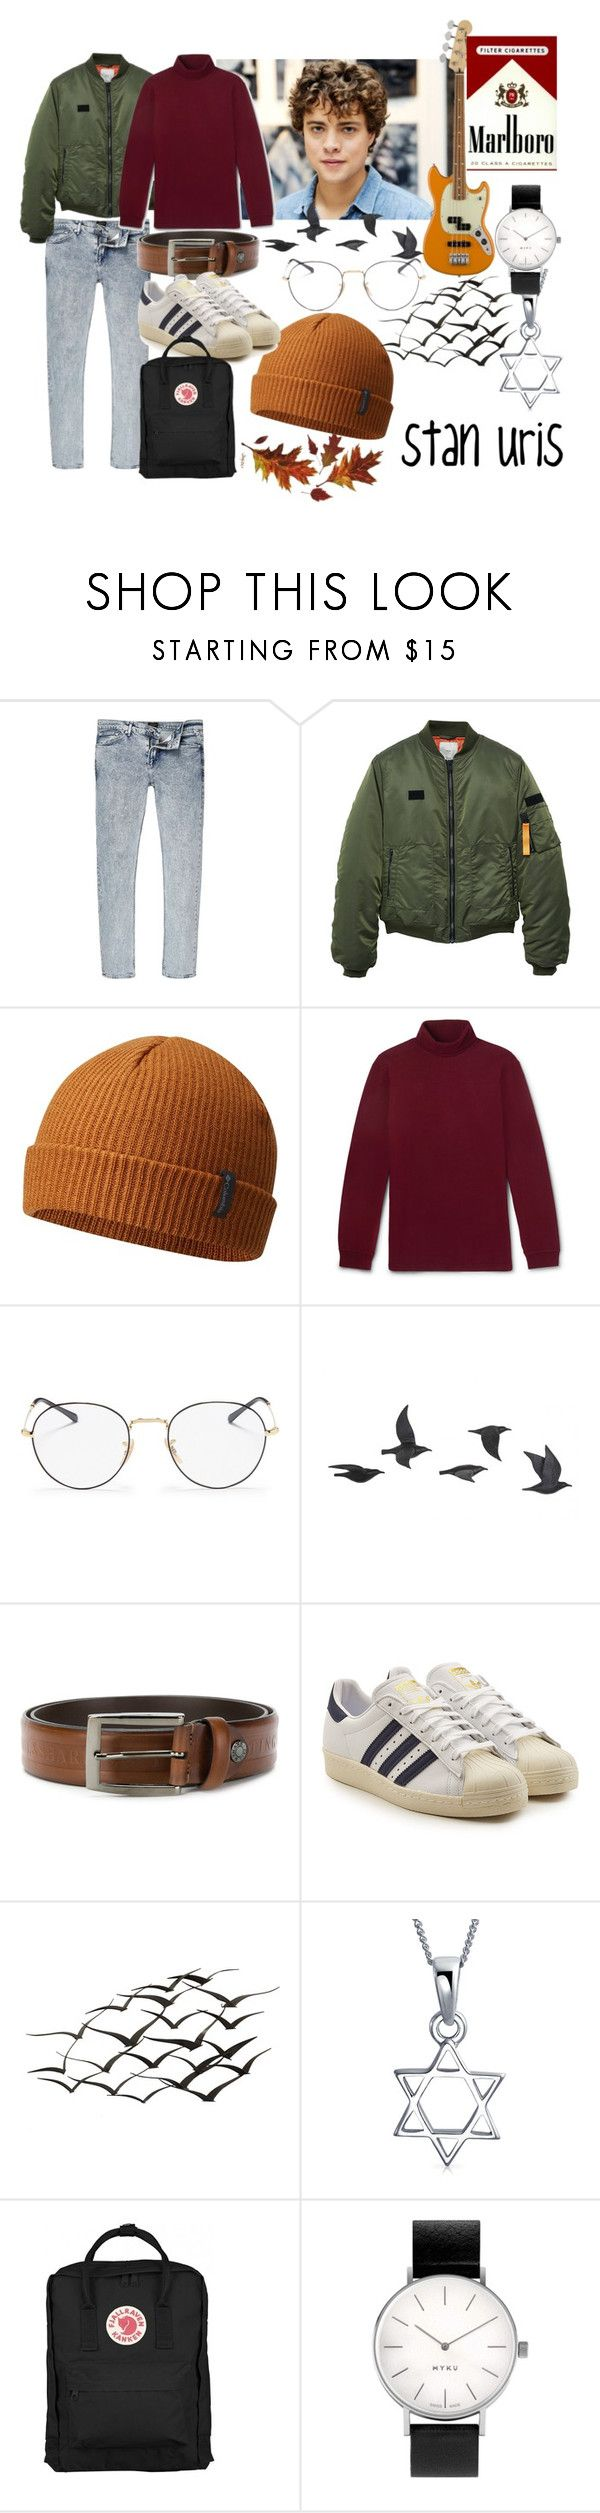 """uris"" by luciatf on Polyvore featuring River Island, MANGO, Columbia, Ray-Ban, Jayson Home, Paul & Shark, adidas Originals, WALL, Bling Jewelry y Thread"